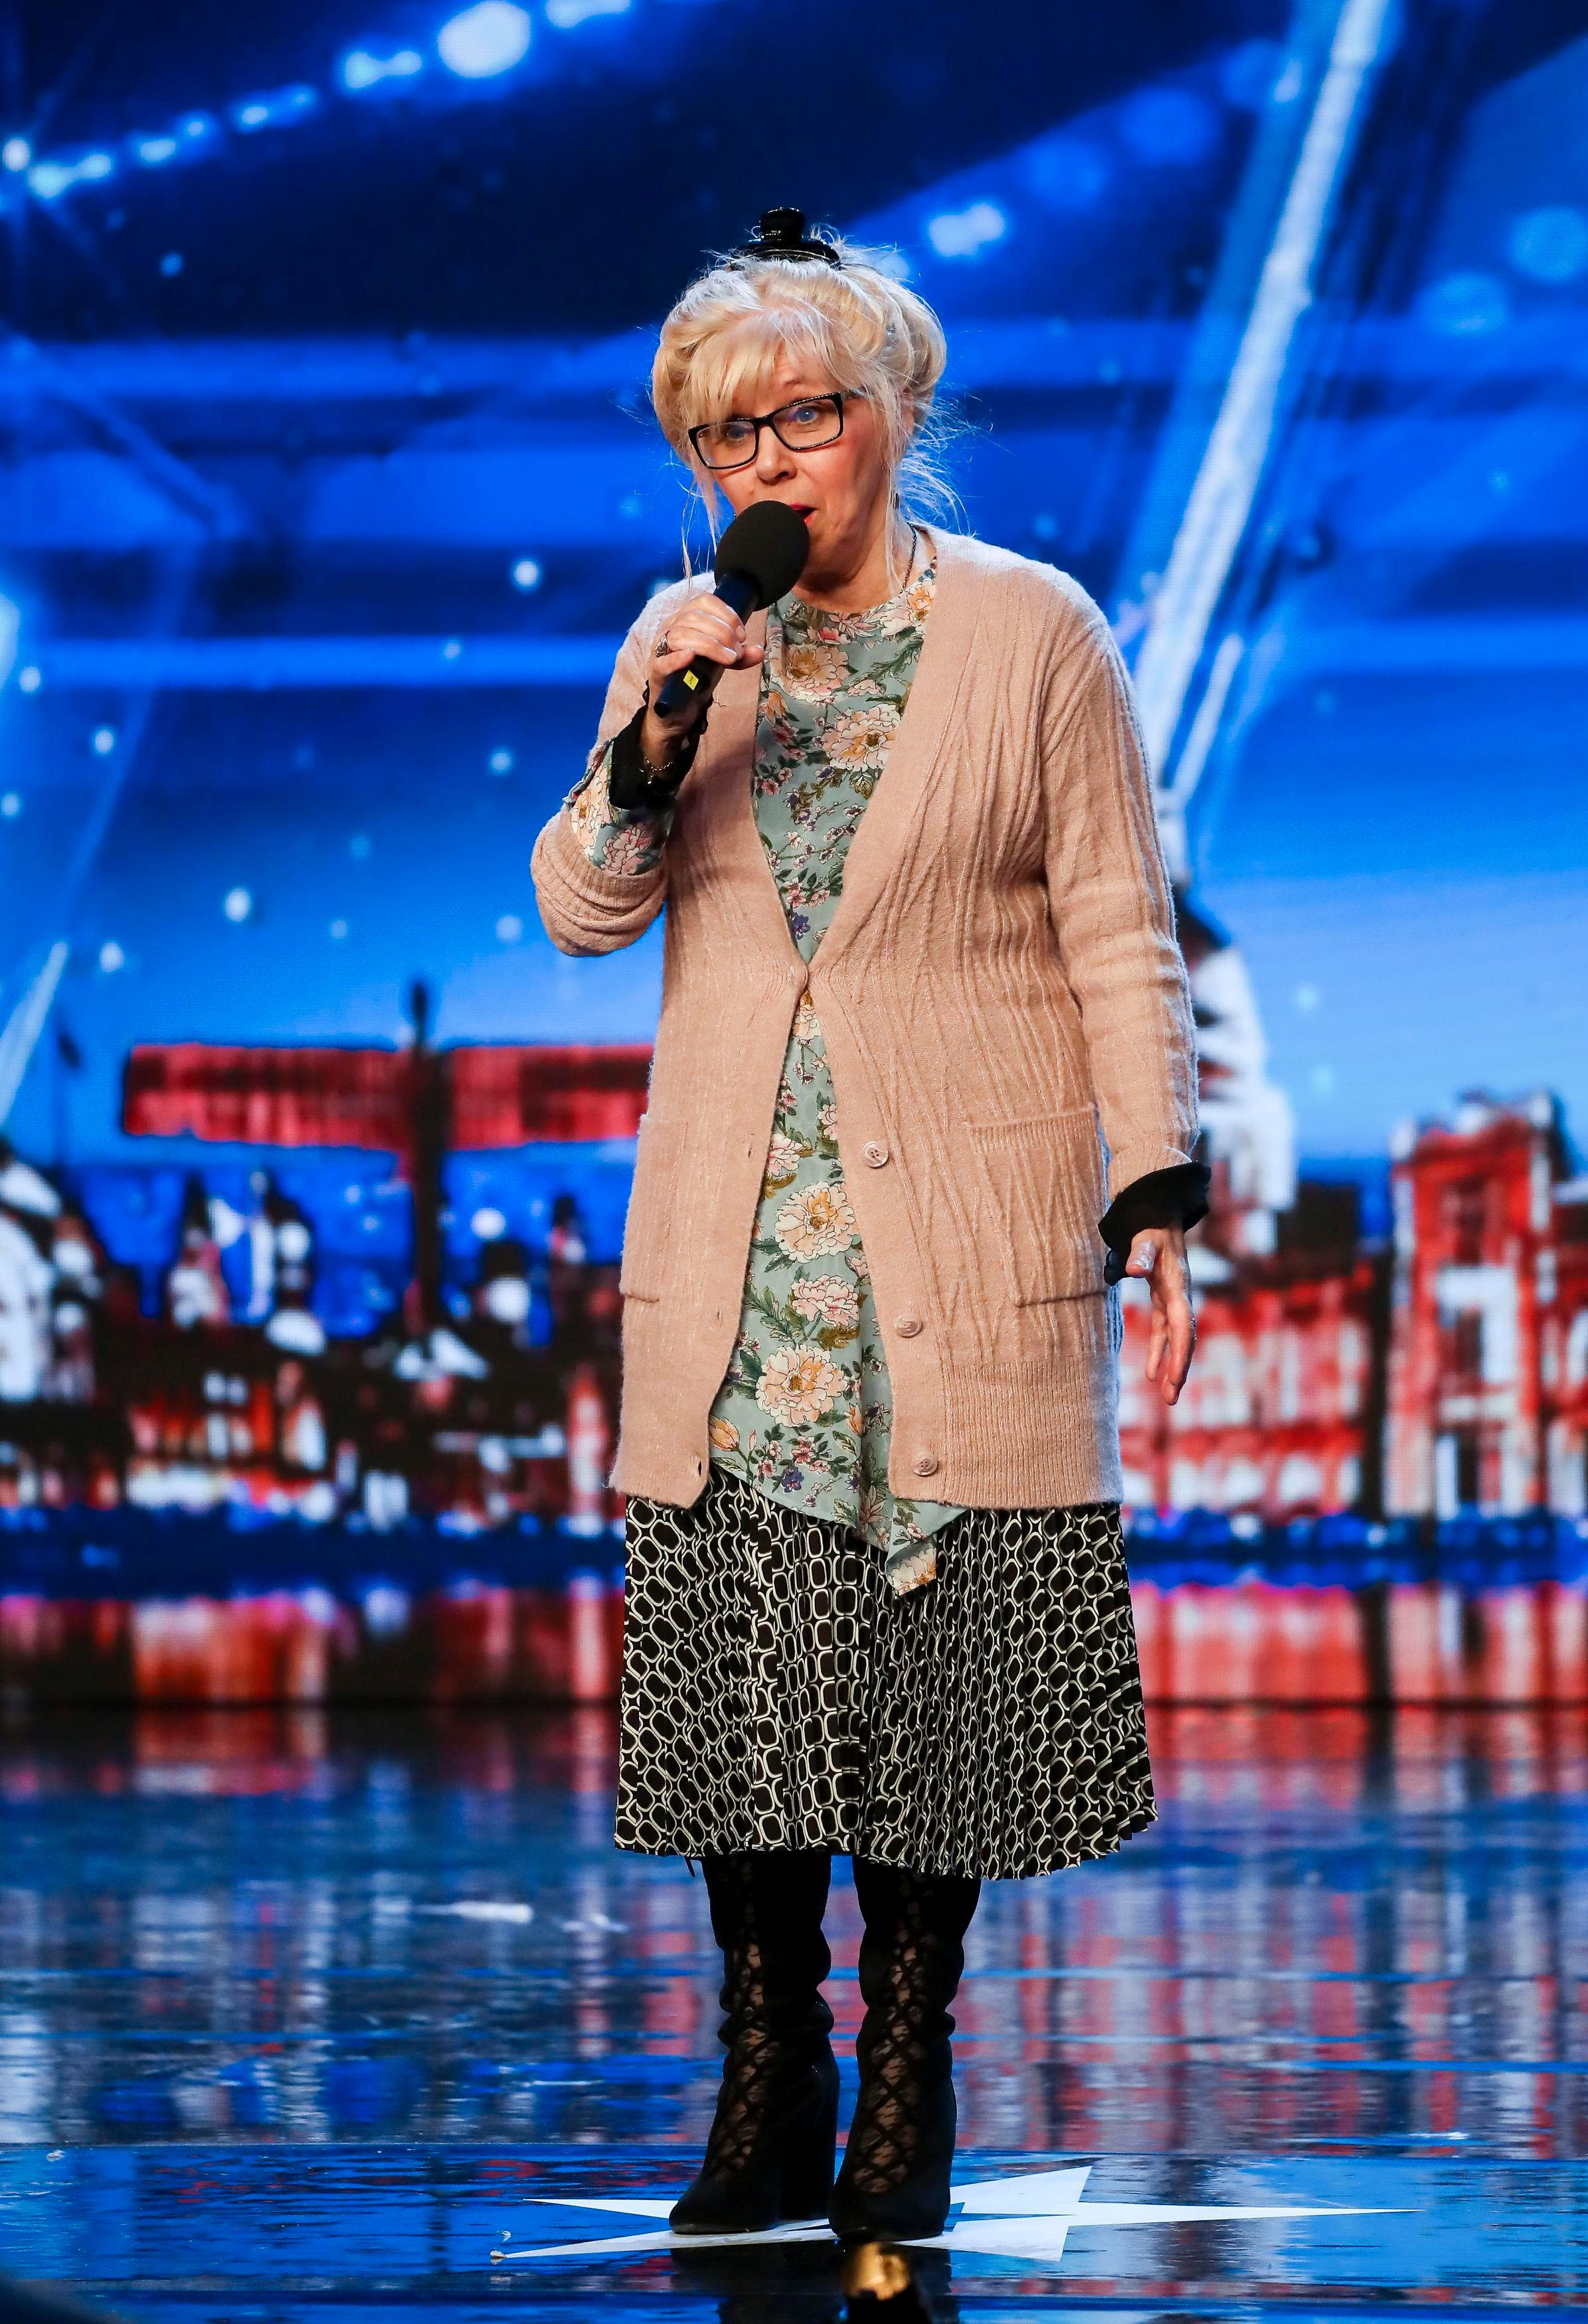 BGT's Jenny Darren liked vile homophobic and racist videos on her YouTube account